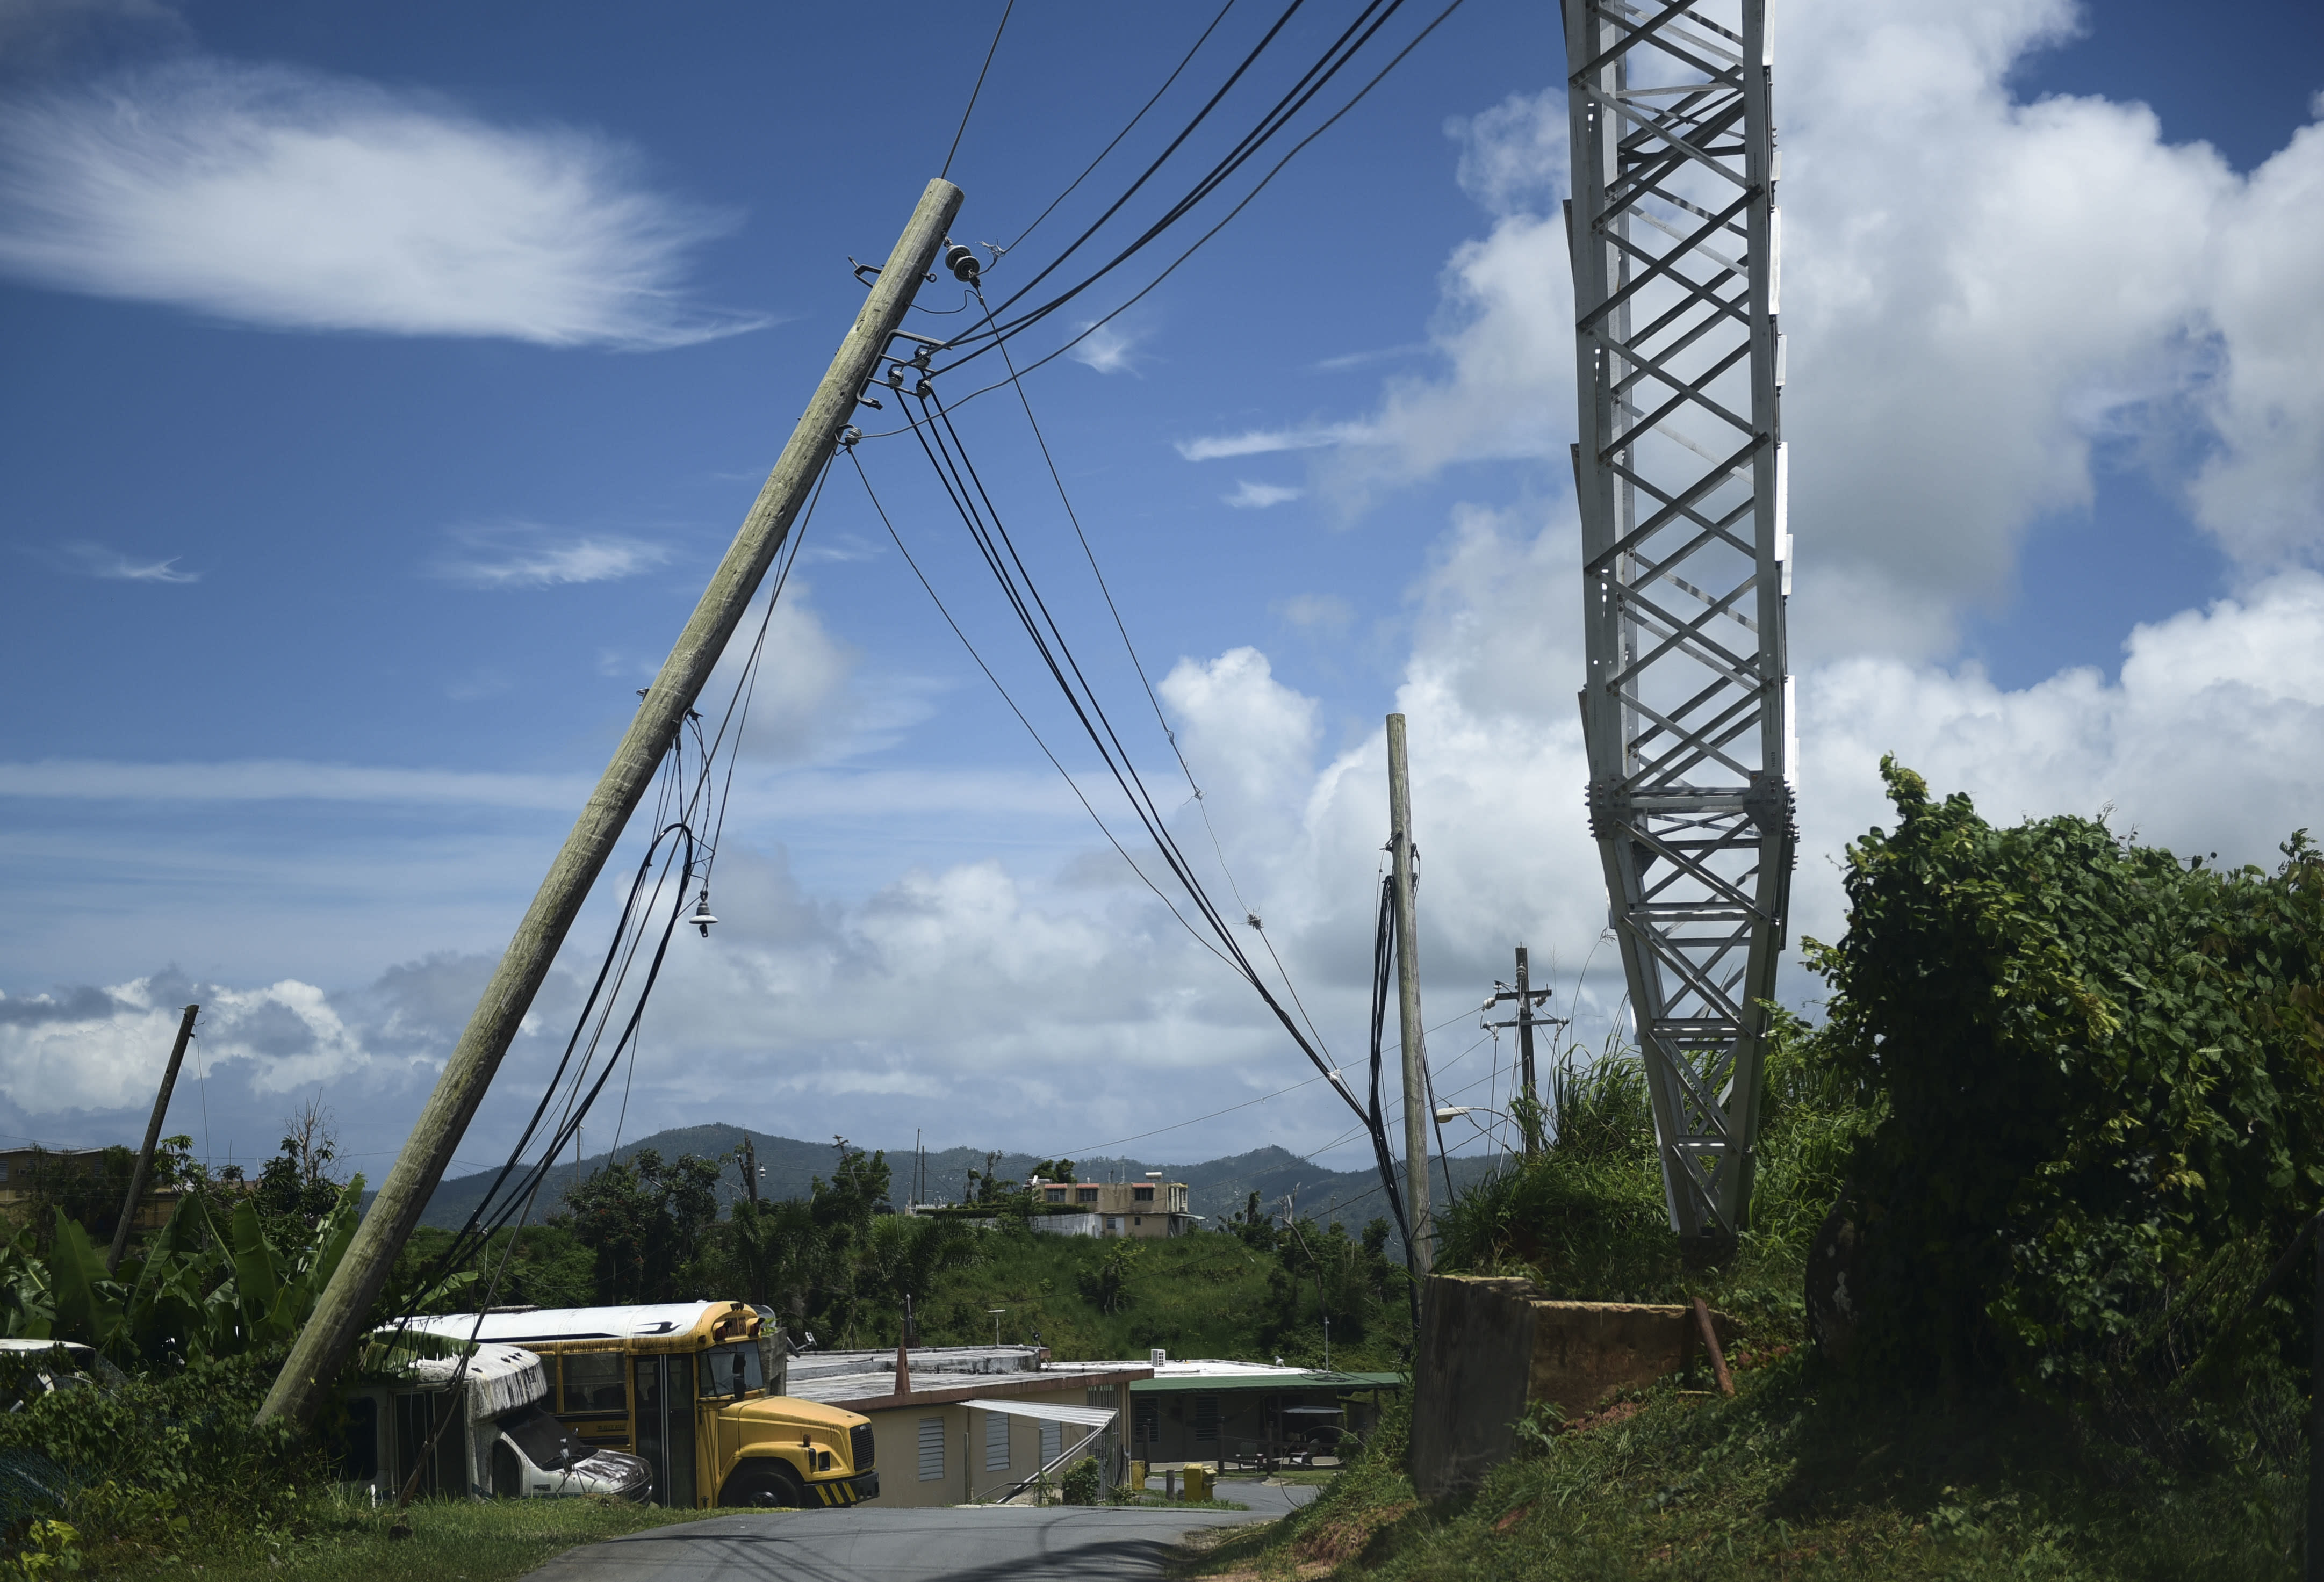 file - In this May 16, 2018 file photo, an electric power pole leans over the road in the Piedra Blanca area of Yabucoa, Puerto Rico, a town still mostly without power since it was struck by Hurricane Maria on Sept. 20. Puerto Rico's new governor announced on Sunday, Aug. 11, 2019 that she is suspending an upcoming $450,000 contract to rebuild and strengthen the island's power grid destroyed by Hurricane Maria. (AP Photo/Carlos Giusti, File)